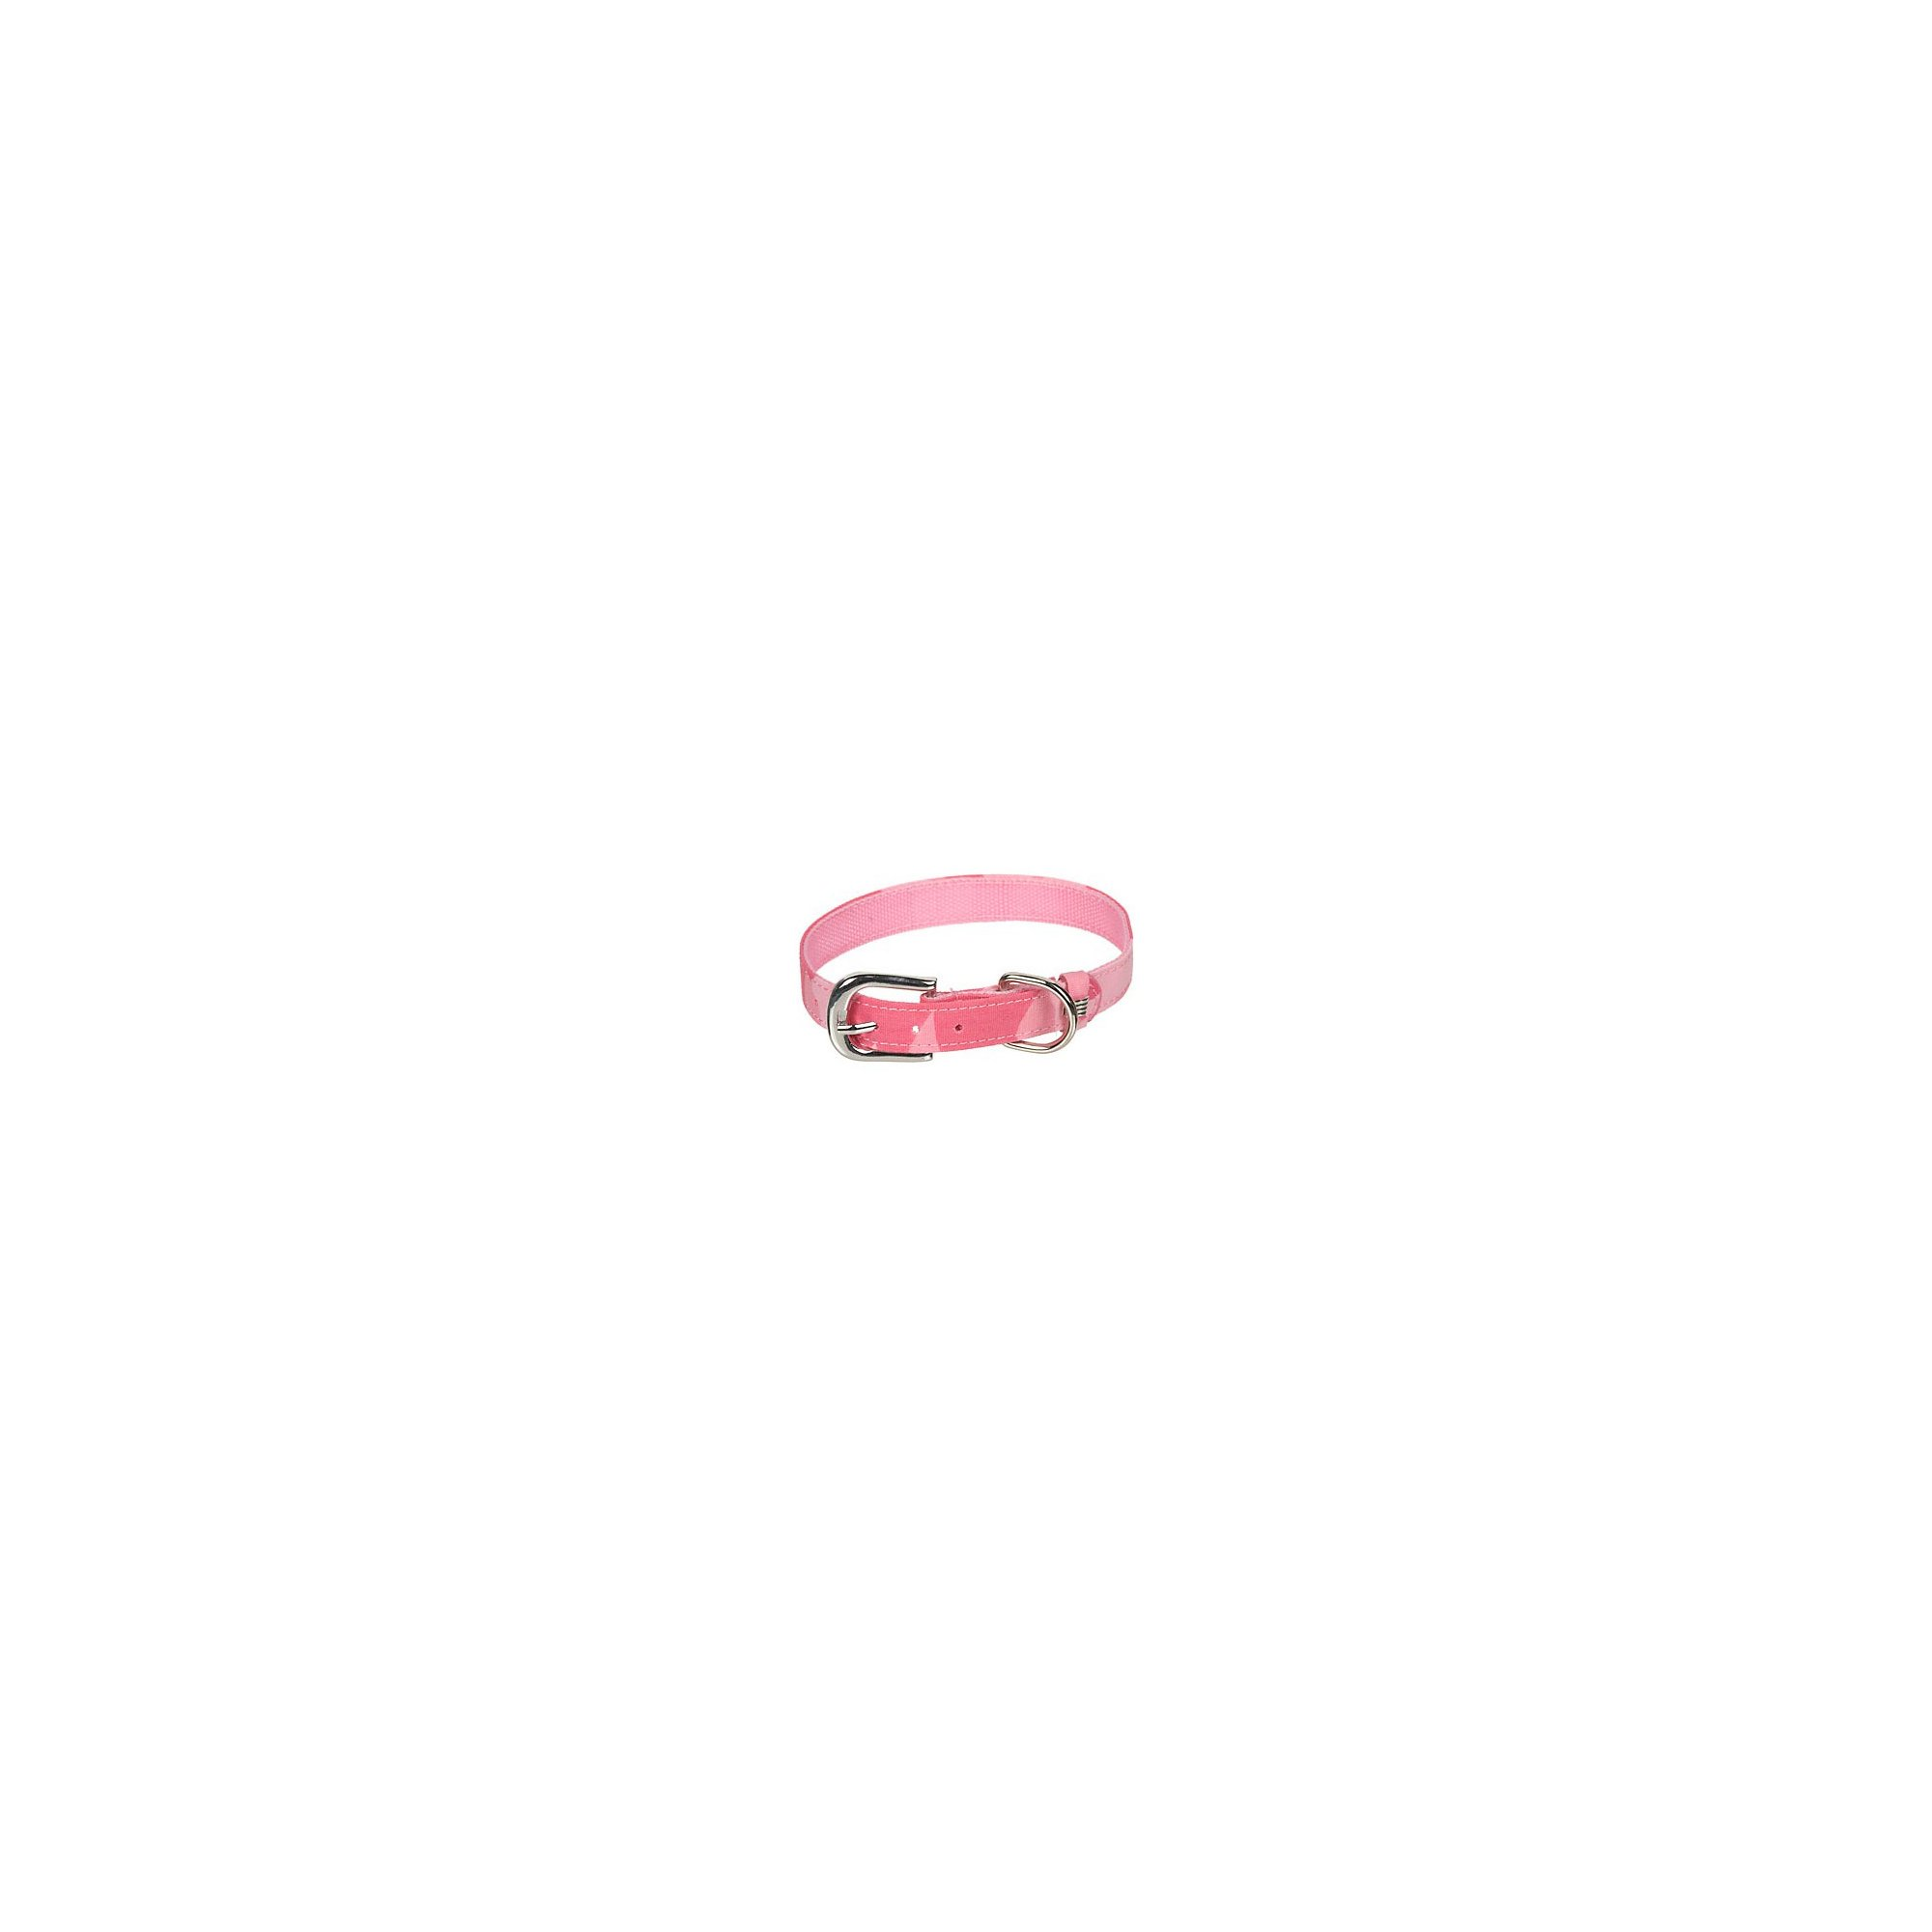 Fashion Angels Create-a-Collar Small 10 mm Charm Collar in Pink Camo